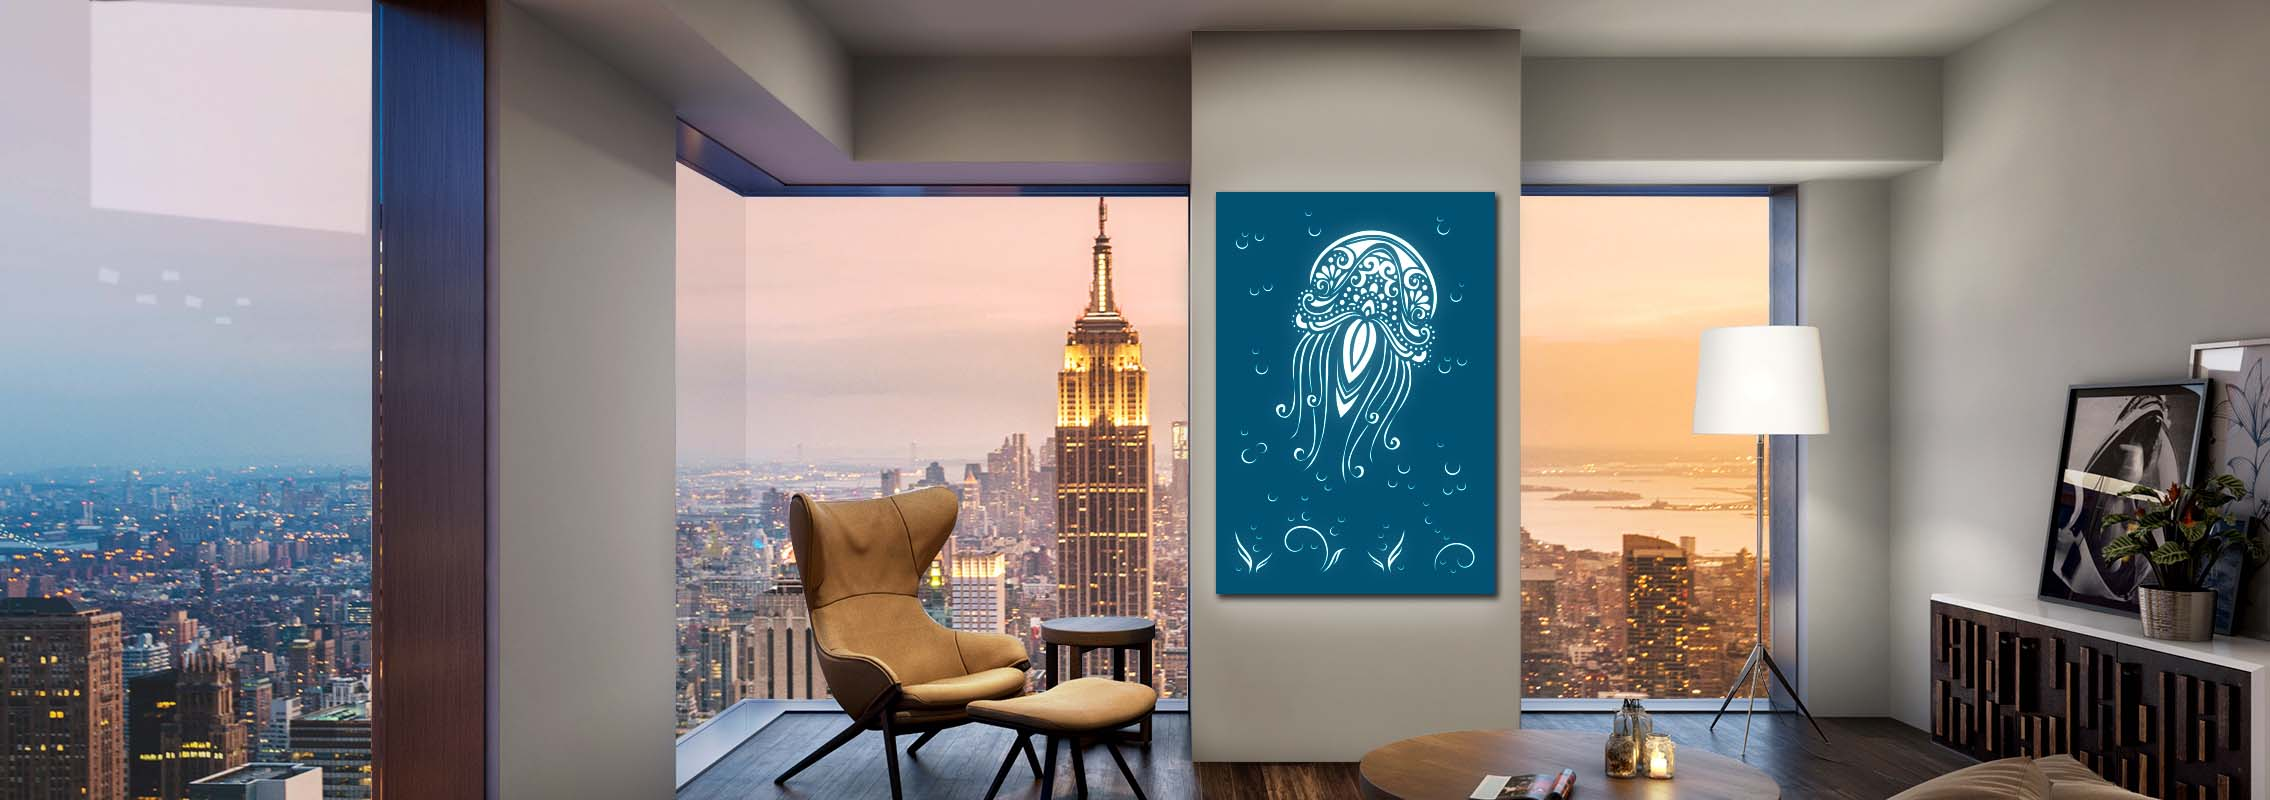 Laser Cut Screen Jellyfish Perfectly Fit in a Modern Apartment